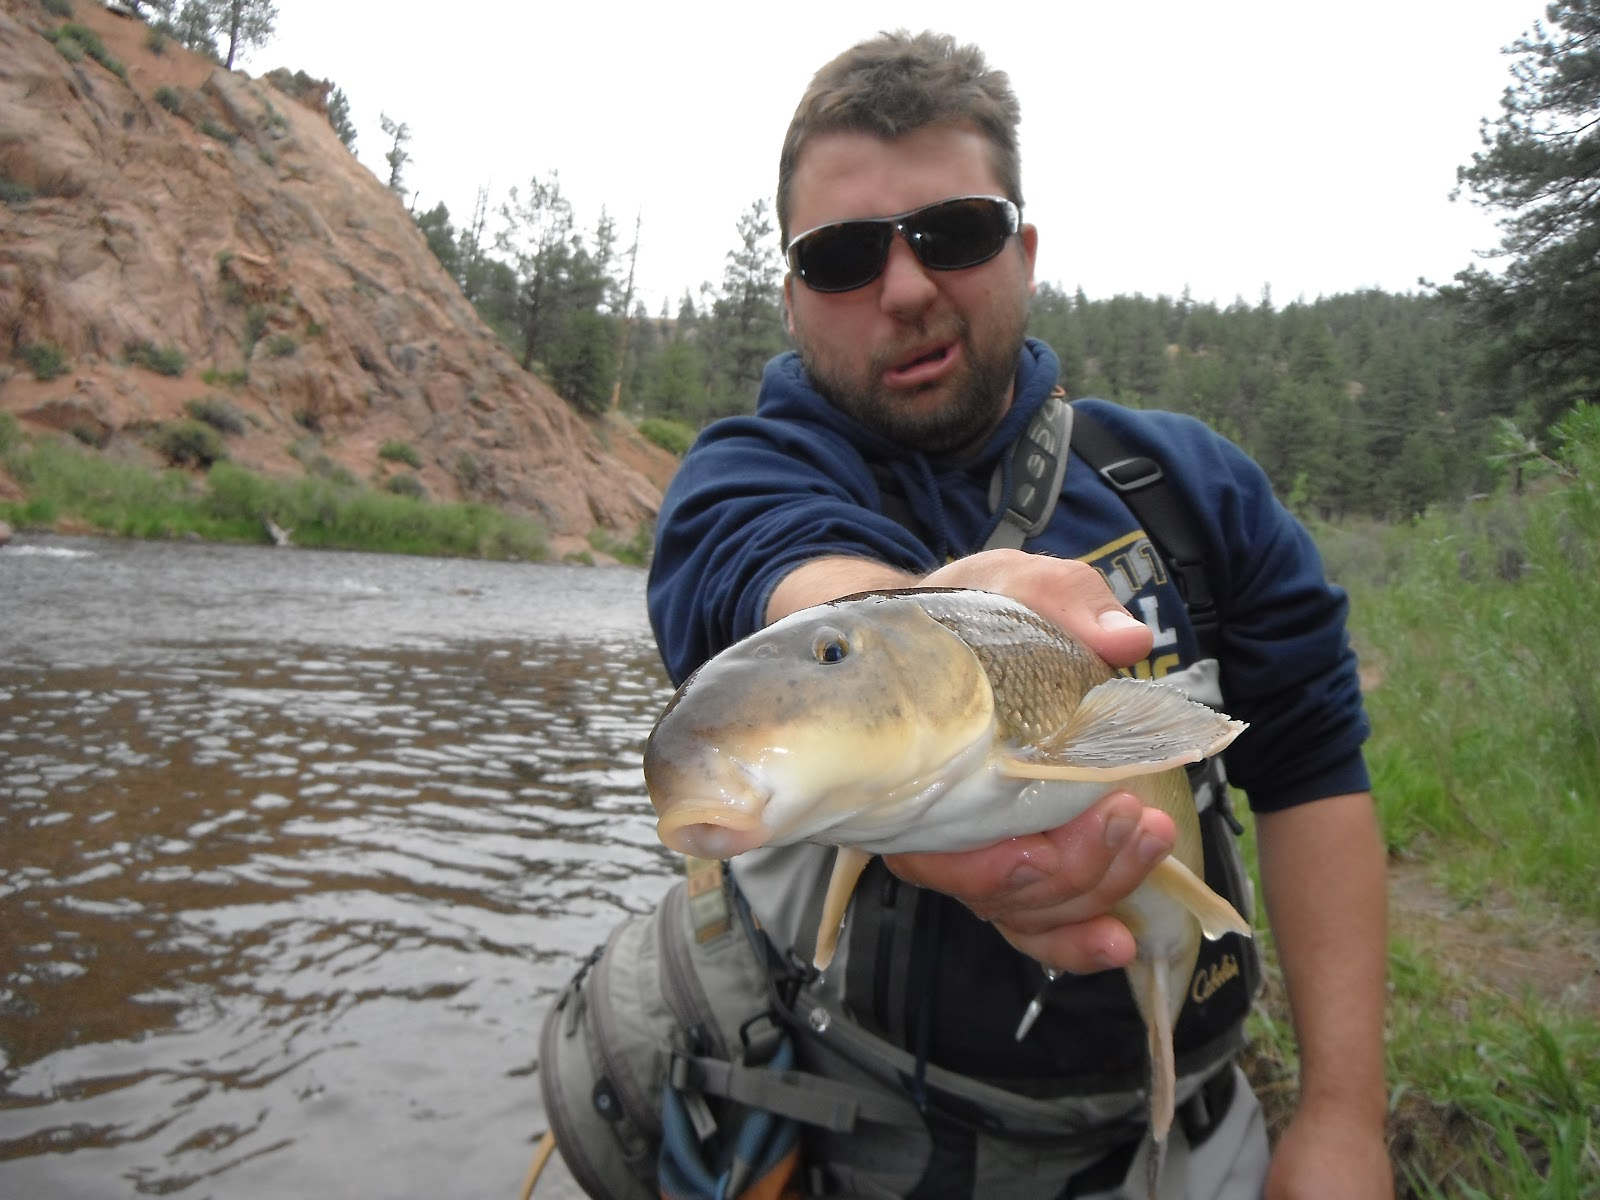 Tie and fly colorado deckers carp fishing for Fly fishing in colorado